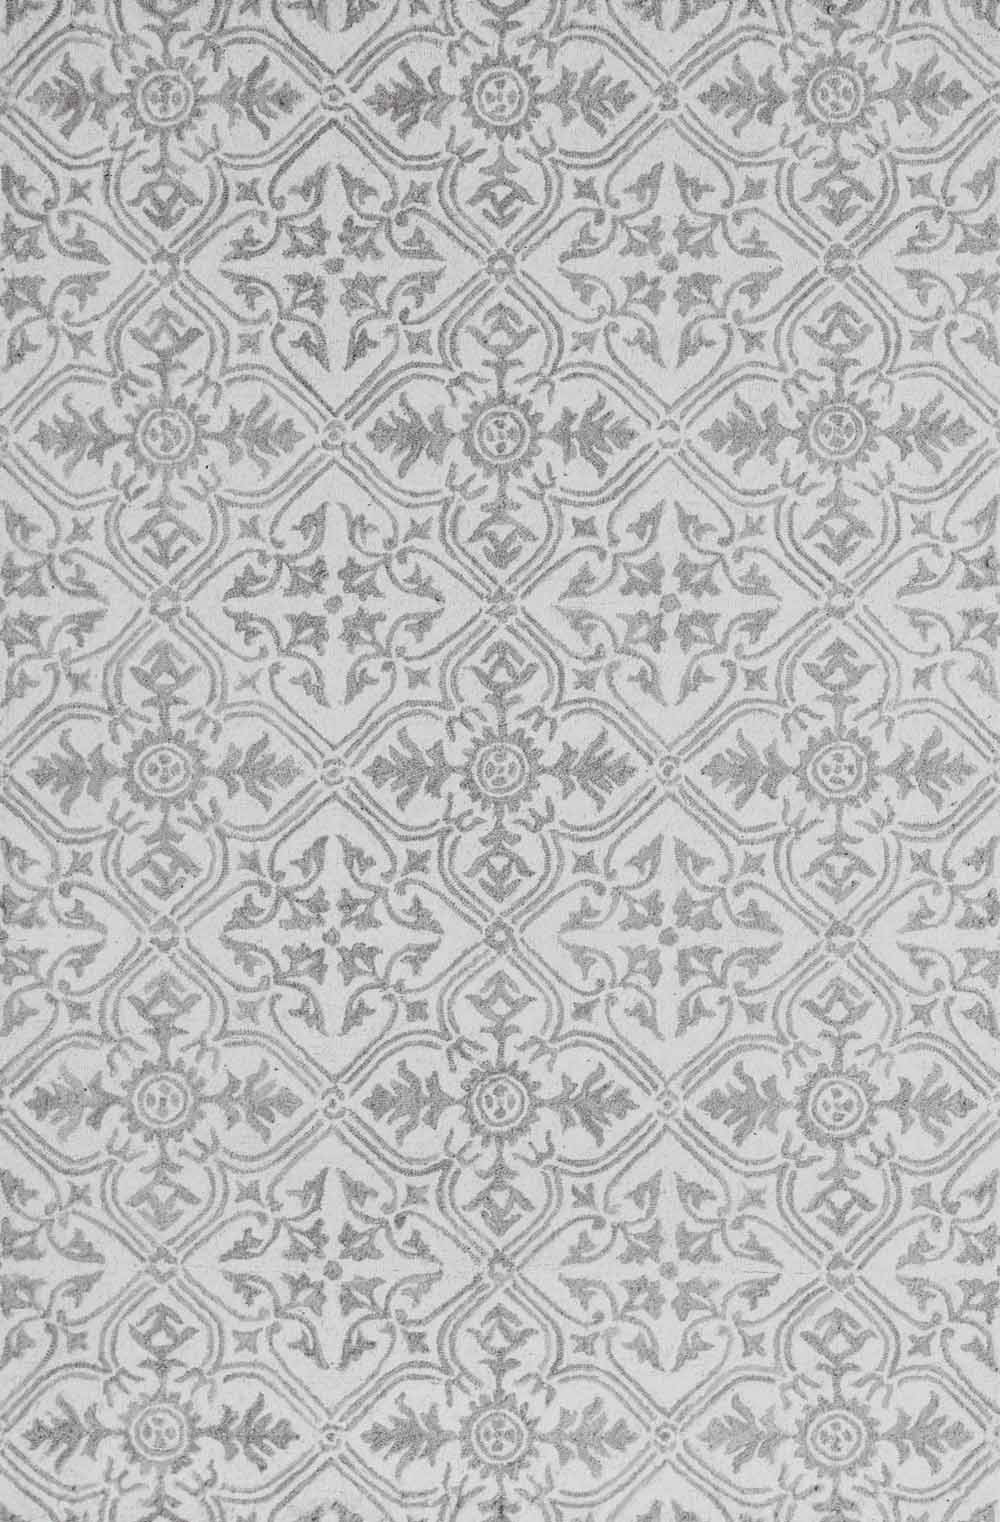 Dynamic Area Rugs Galleria 7867-100 Beige Geometric Design